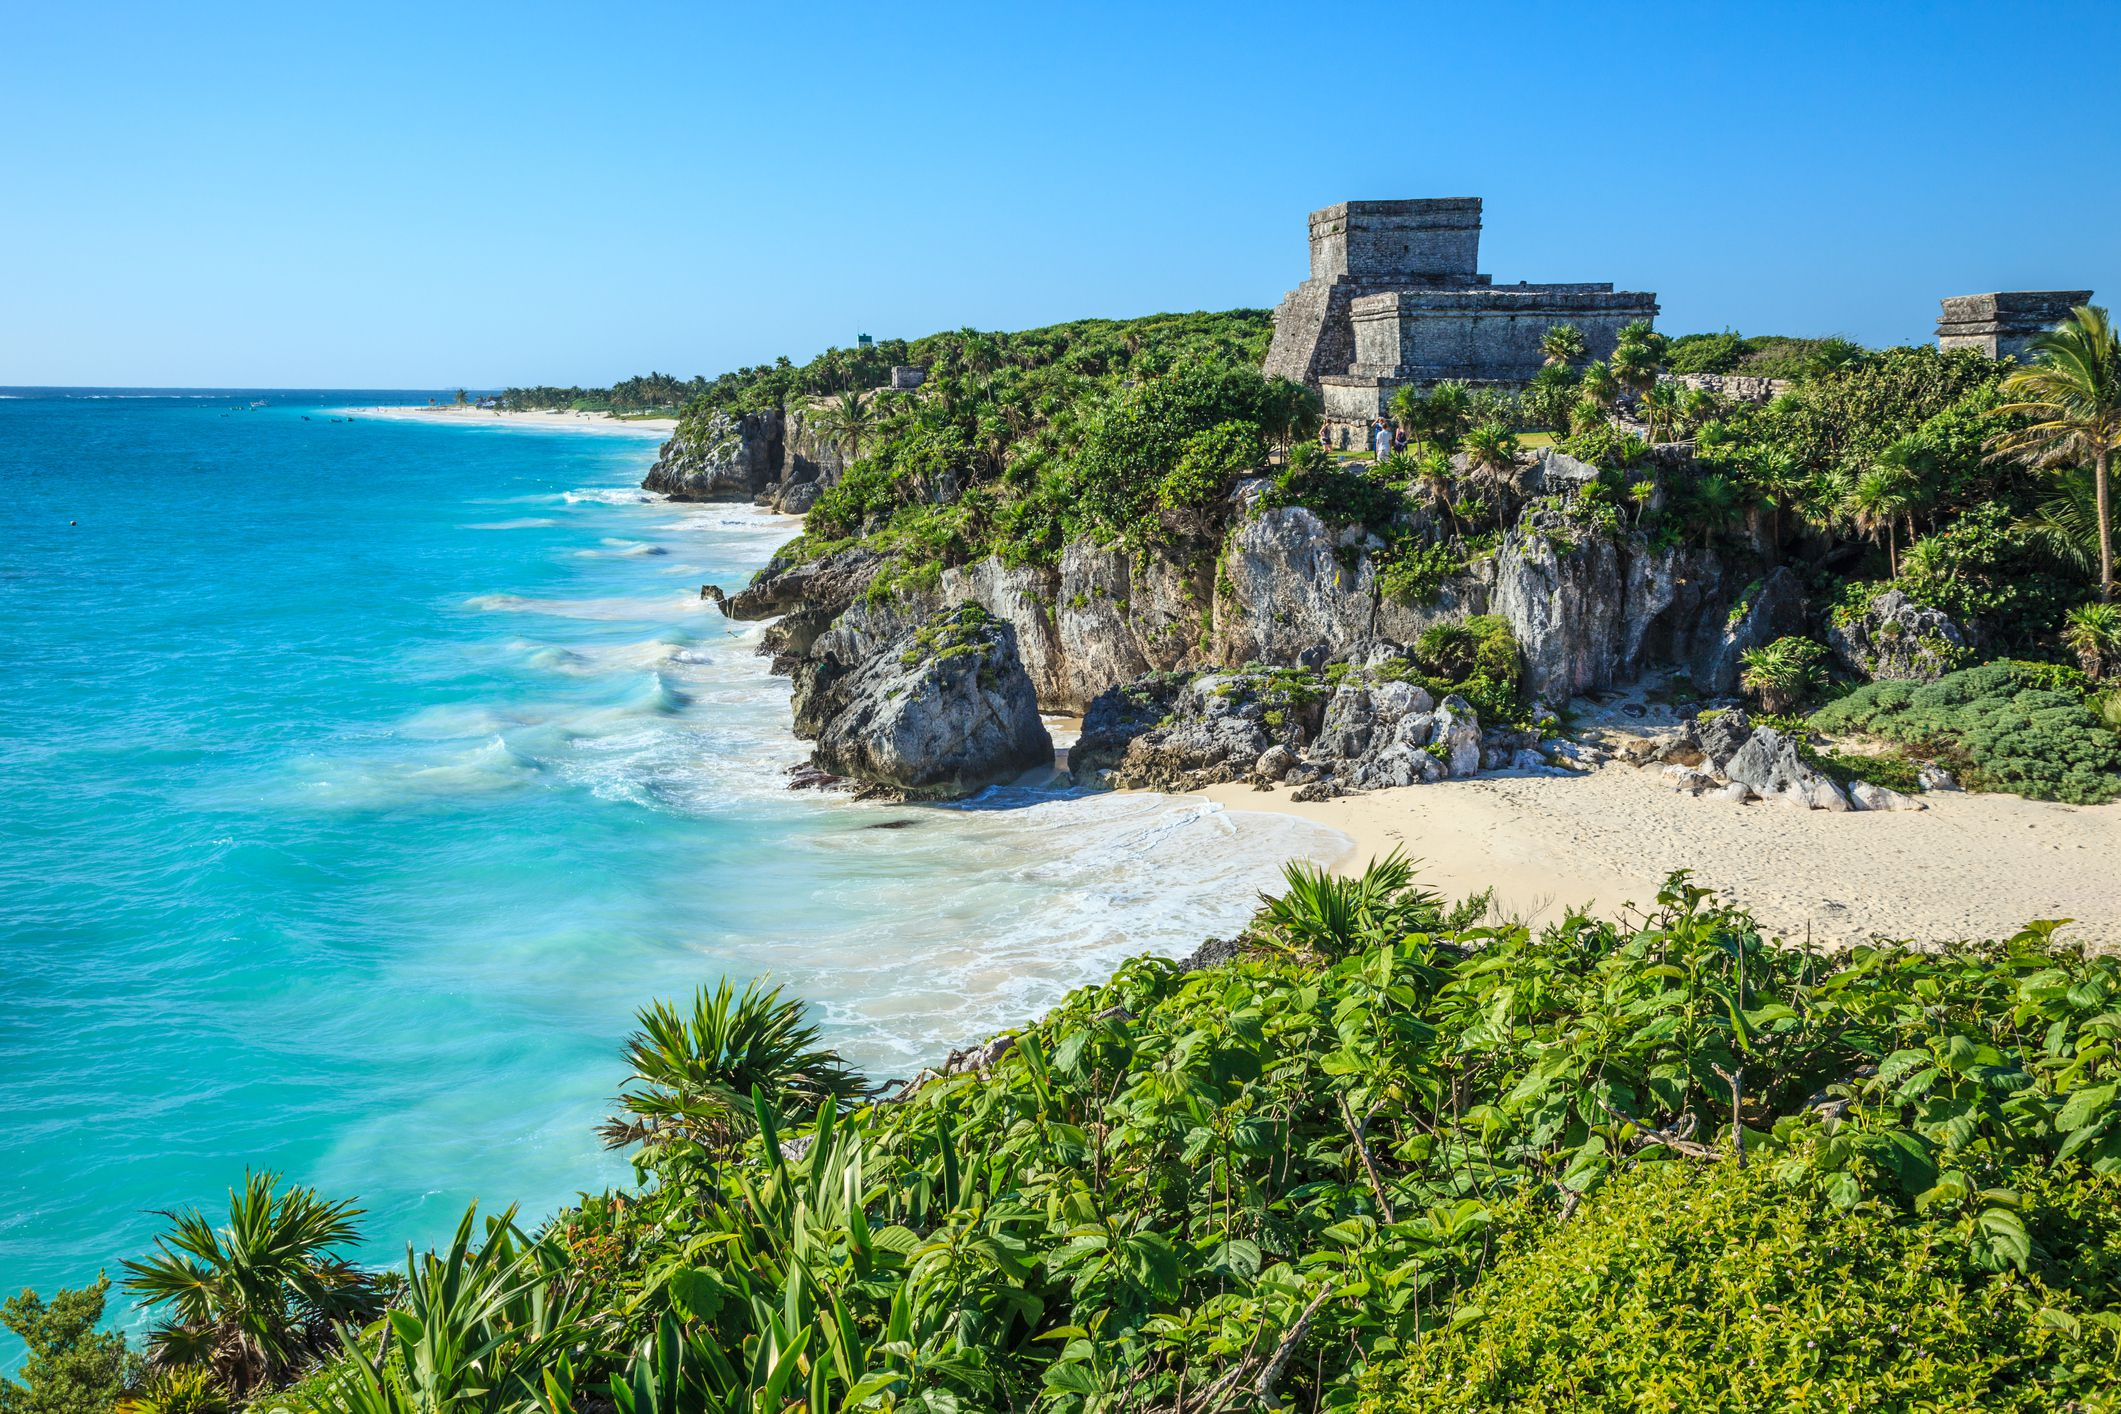 A Tulum Travel Guide With Budget and FAQ